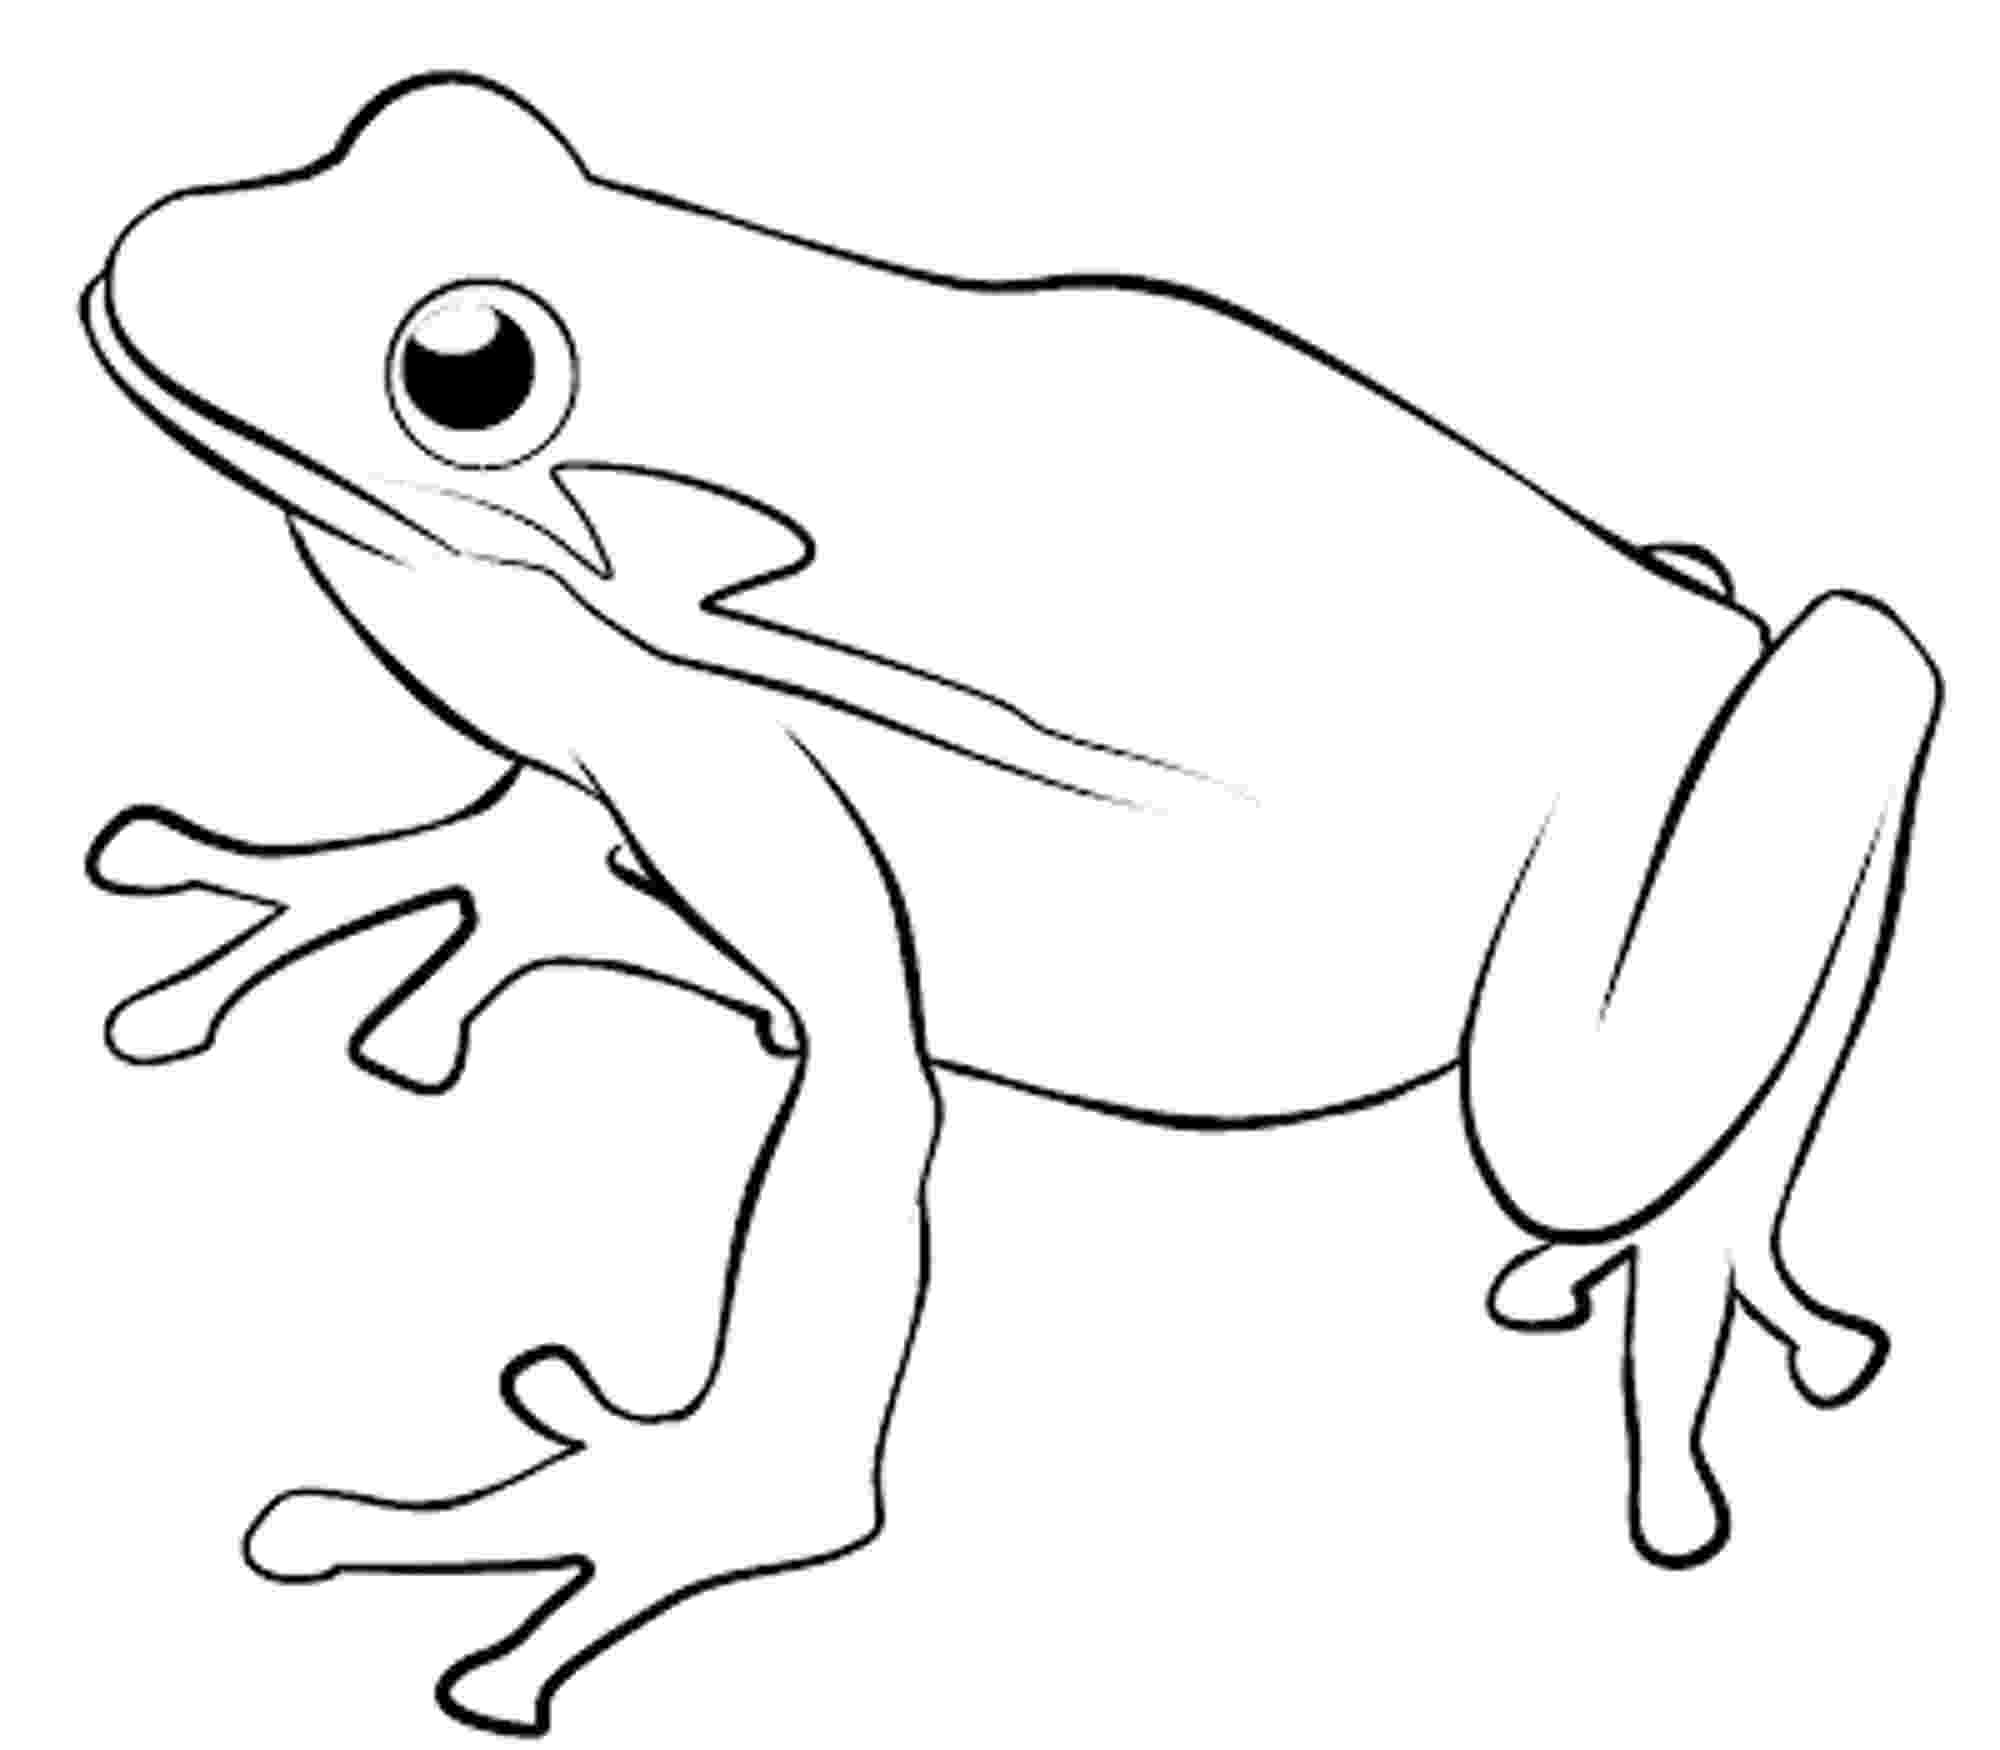 toad pictures to print coloring pages for kids frog coloring pages toad print pictures to